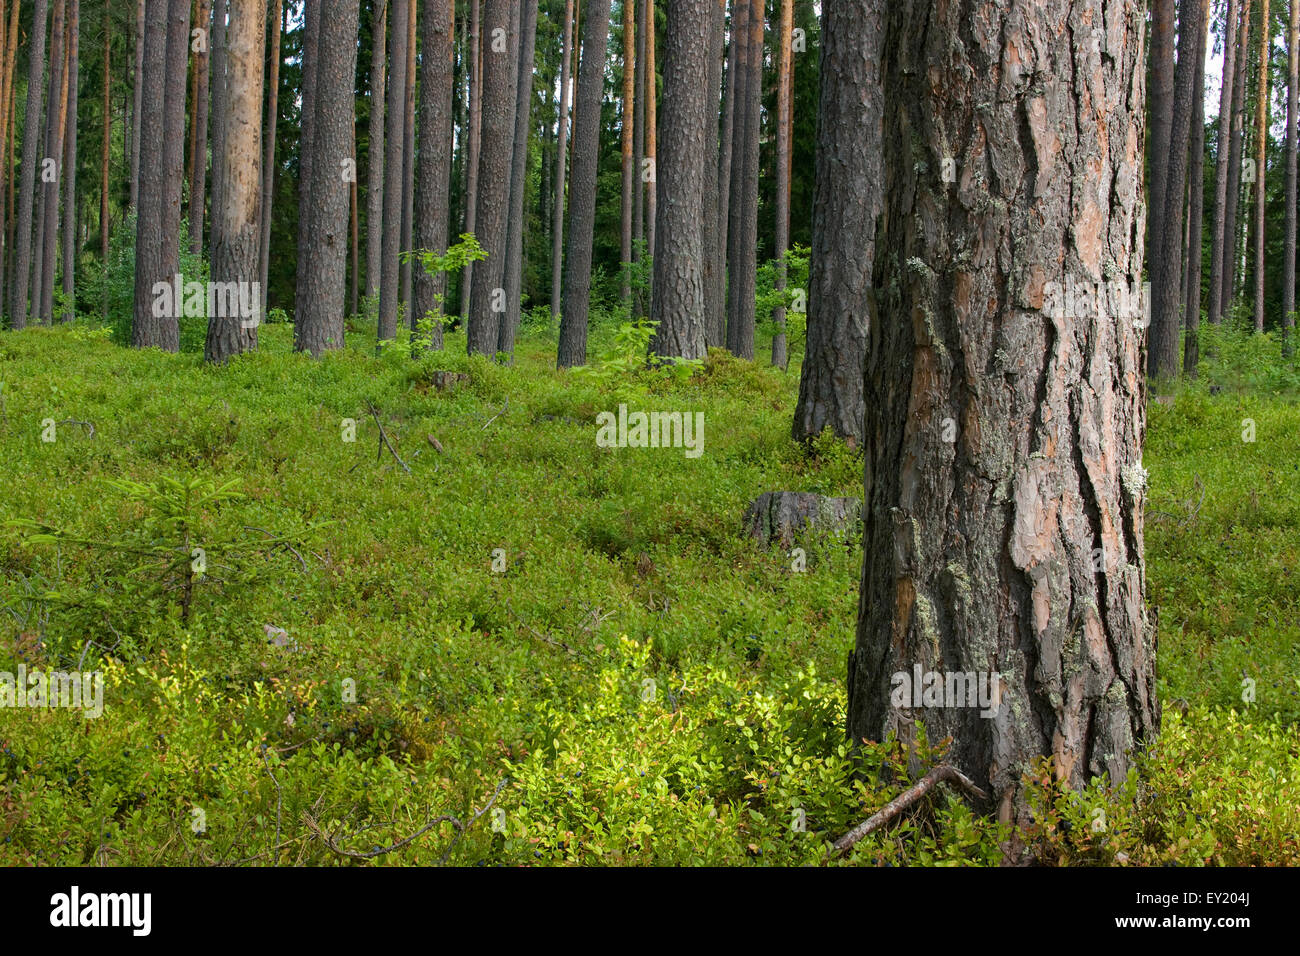 Pine forest floor covered with blueberry bushes Stock Photo